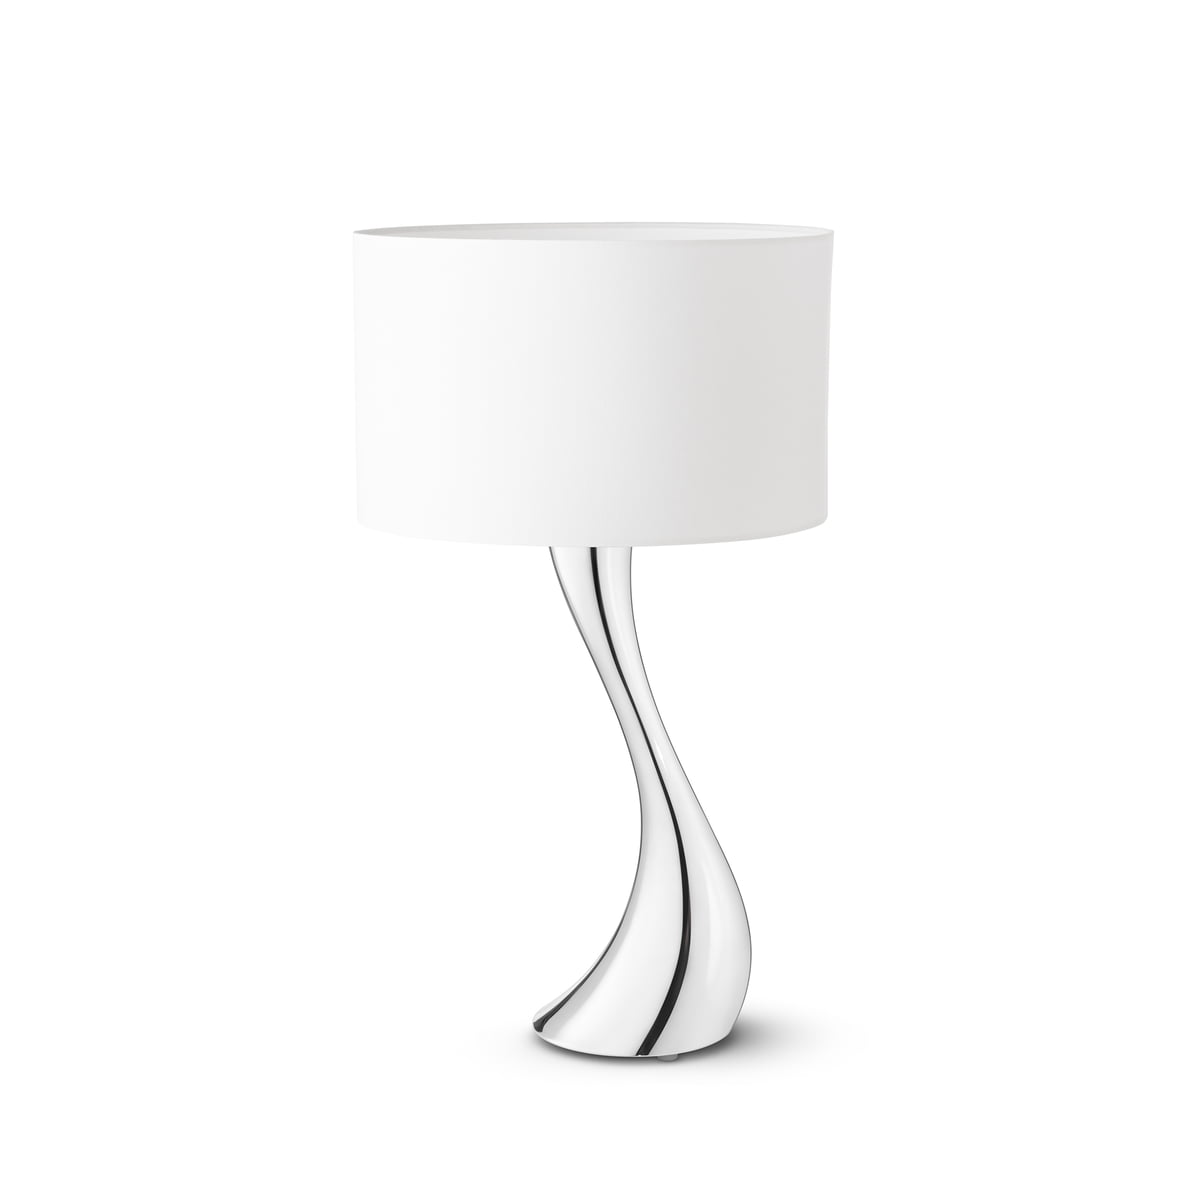 The cobra table lamp by georg jensen in the shop georg jensen cobra table lamp small white aloadofball